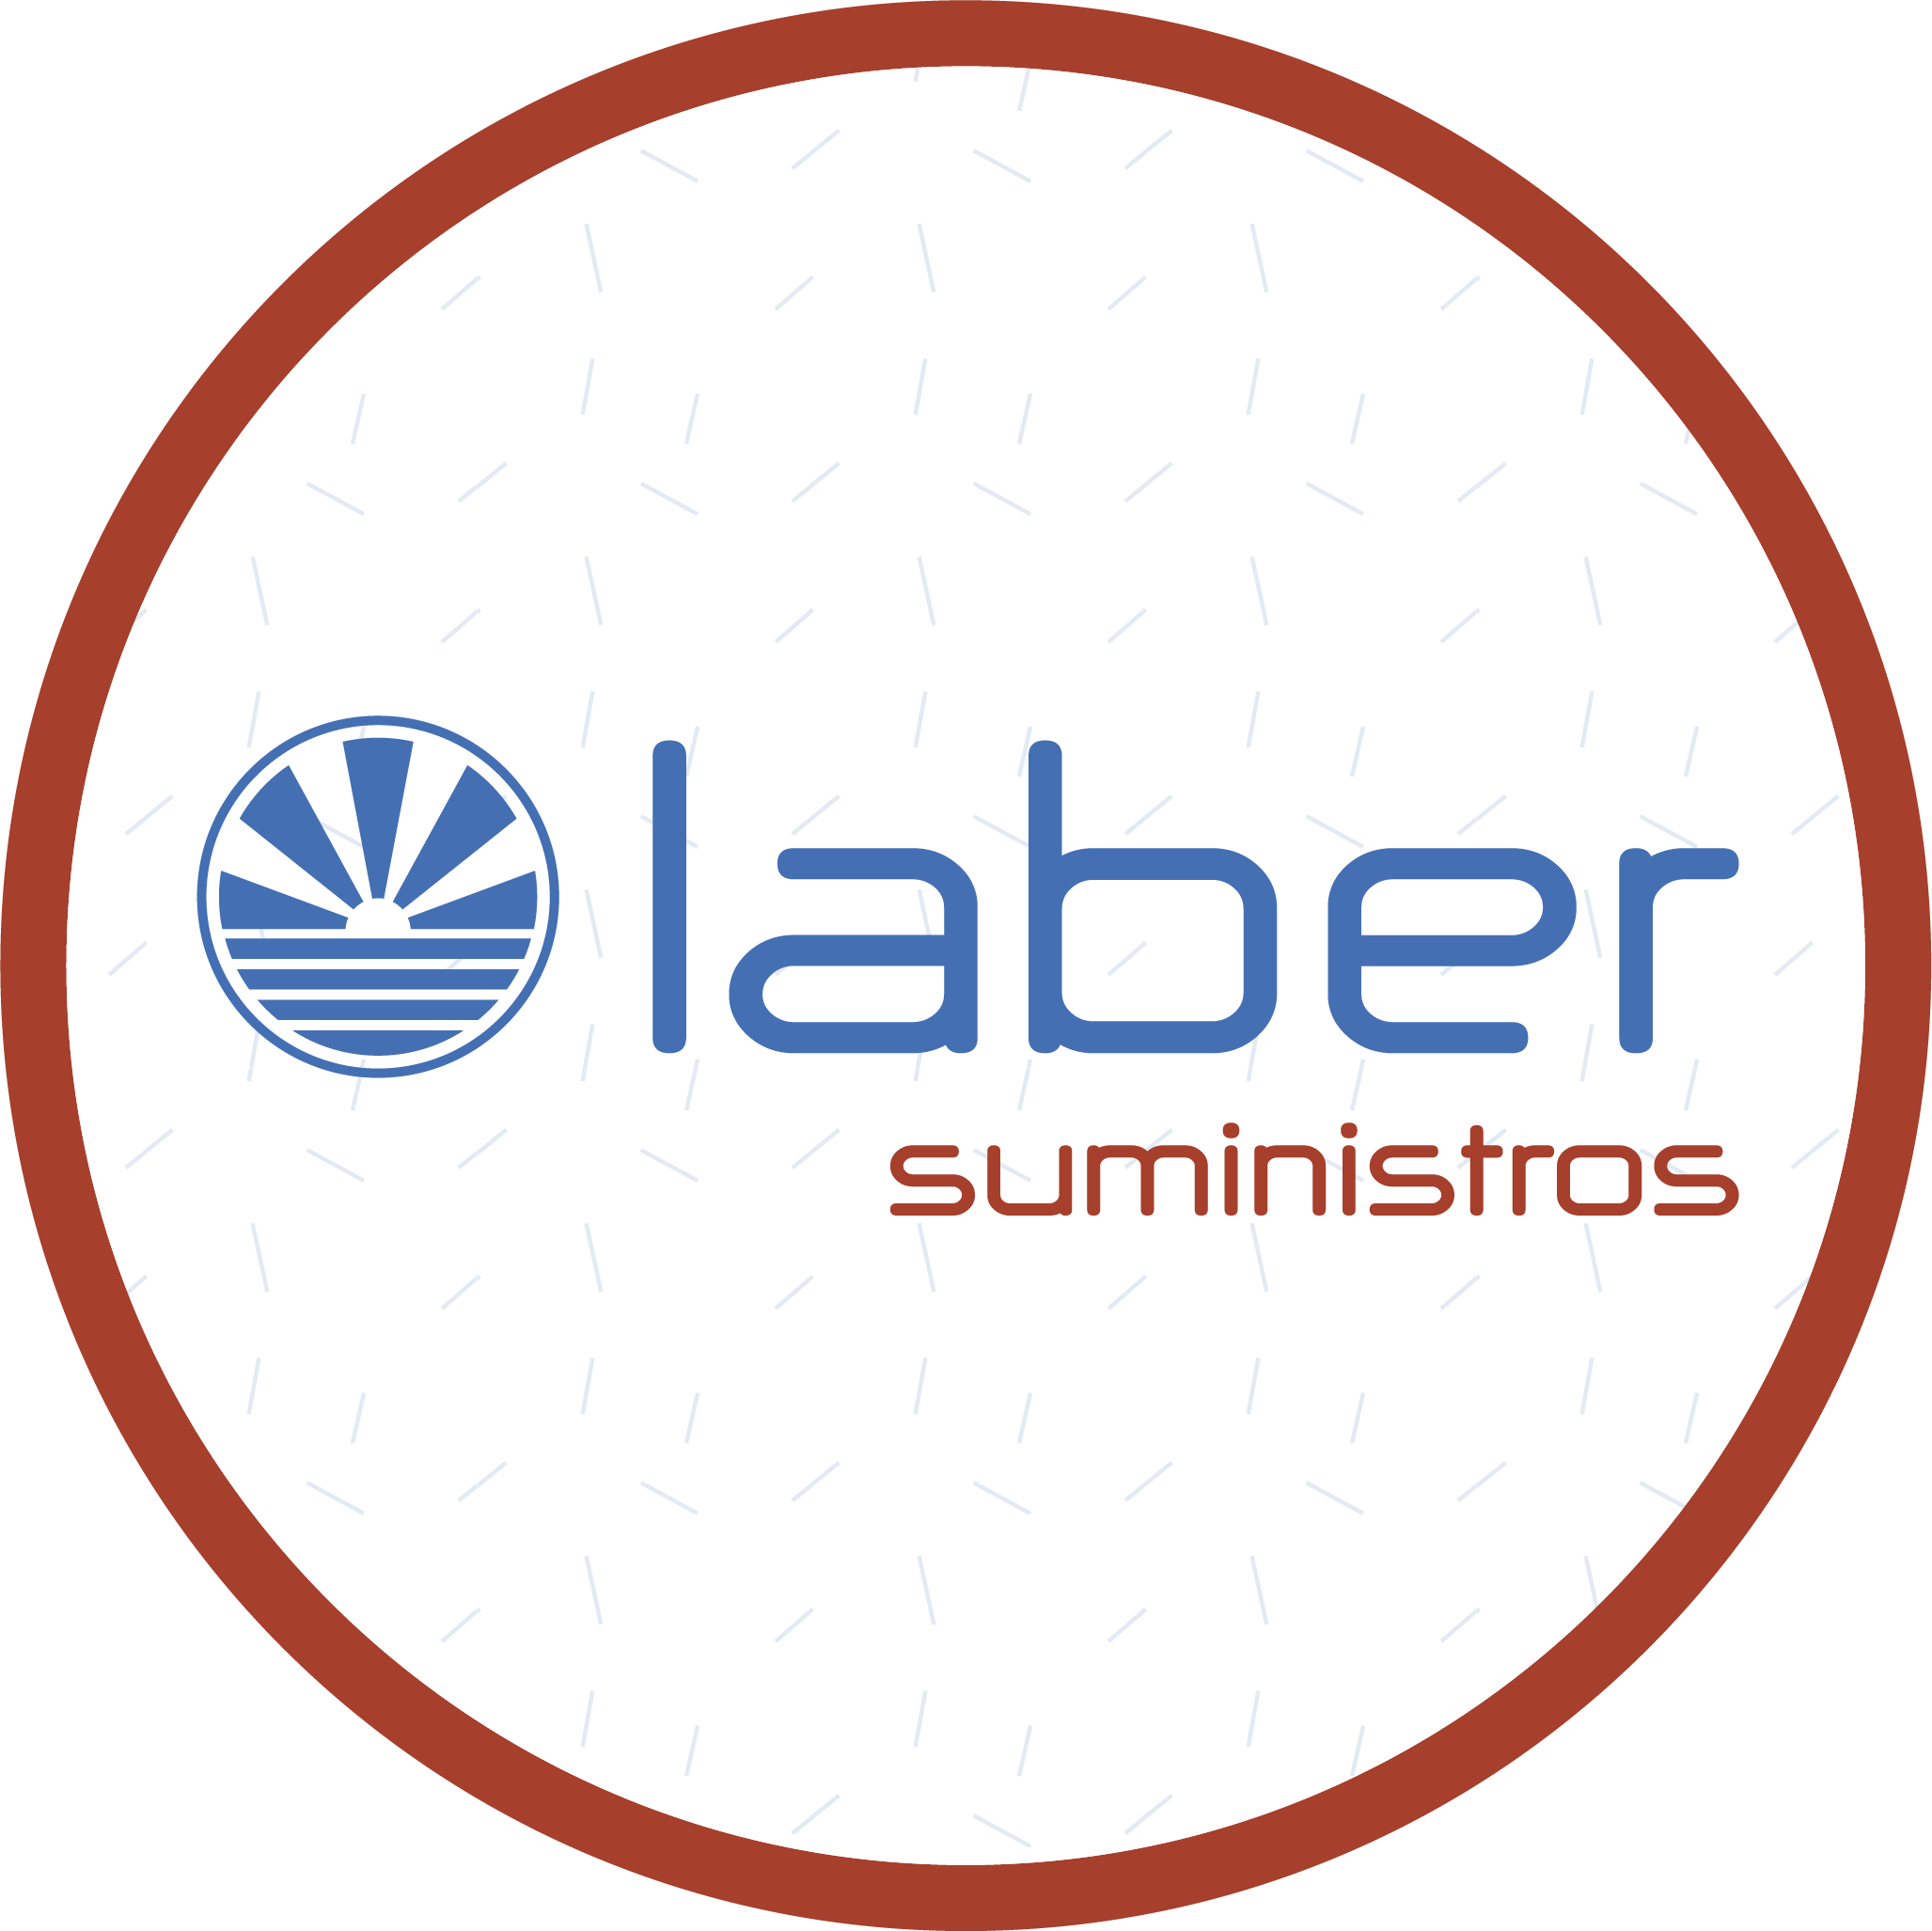 https://labersl.es/wp-content/uploads/2021/02/Circulo-SUMINISTROS-rgb.png